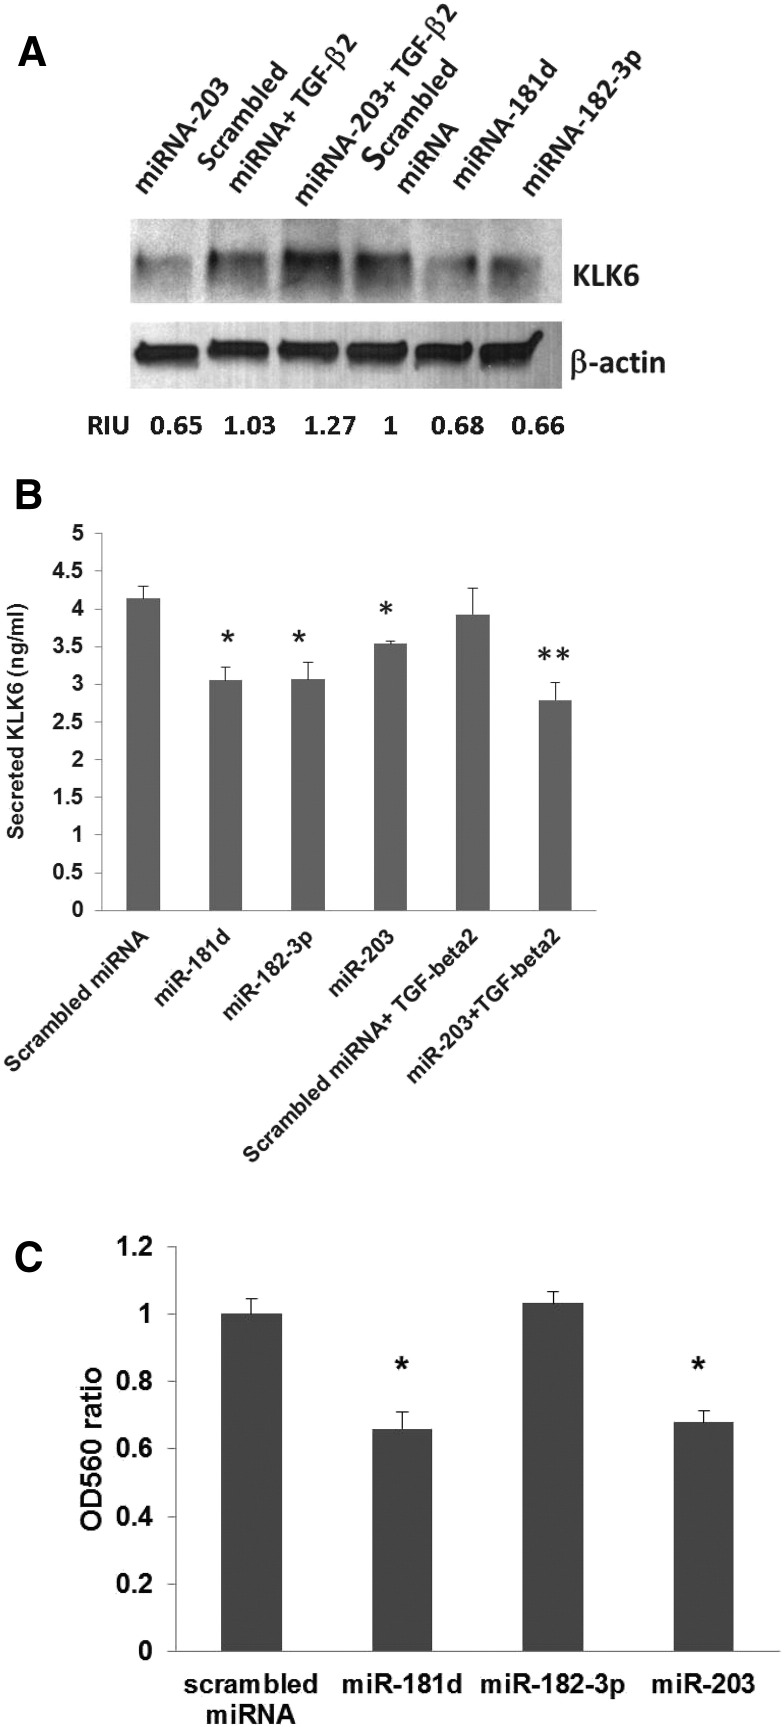 Effect of selected miRNA mimics on KLK6 expression and/or secretion and invasion in HCT116 colon cancer cells. (A) Western blot analysis of KLK6 intracellular protein level in HCT116 cells treated with miR-181d, miR-182 and miR-203 mimics. HCT116 cells were transfected with each of selected miRNA mimics at concentration of 75 nM and cells were processed for Western blot analysis 48 h after transfection. Some cell culture plates were also treated with TGF-β2 ligand (5 ng/ml in a serum-free media) and/or miR-203 mimic. β-actin was used as a loading control. Protein bands quantitation was done using Image J software and presented as Relative Intensity Units (RIU, protein/β-actin ratio normalized to scrambled miRNA sample). Figure is a representative of two independent experiments. (B) Concentration of KLK6 in the conditioned media of HCT116 cells upon treatment with selected miRNA mimics by ELISA * P ≤ .02, ** P = .002 by t -test. (C) Matrigel invasion assay of HCT116 cells treated with individual miRNA mimics. Cells were seeded onto Matrigel coated Boyden chambers 24 h after transfections and allow to invade for 48 hours. Analysis was done as described in Material and Methods section * P ≤ .002 by t -test.